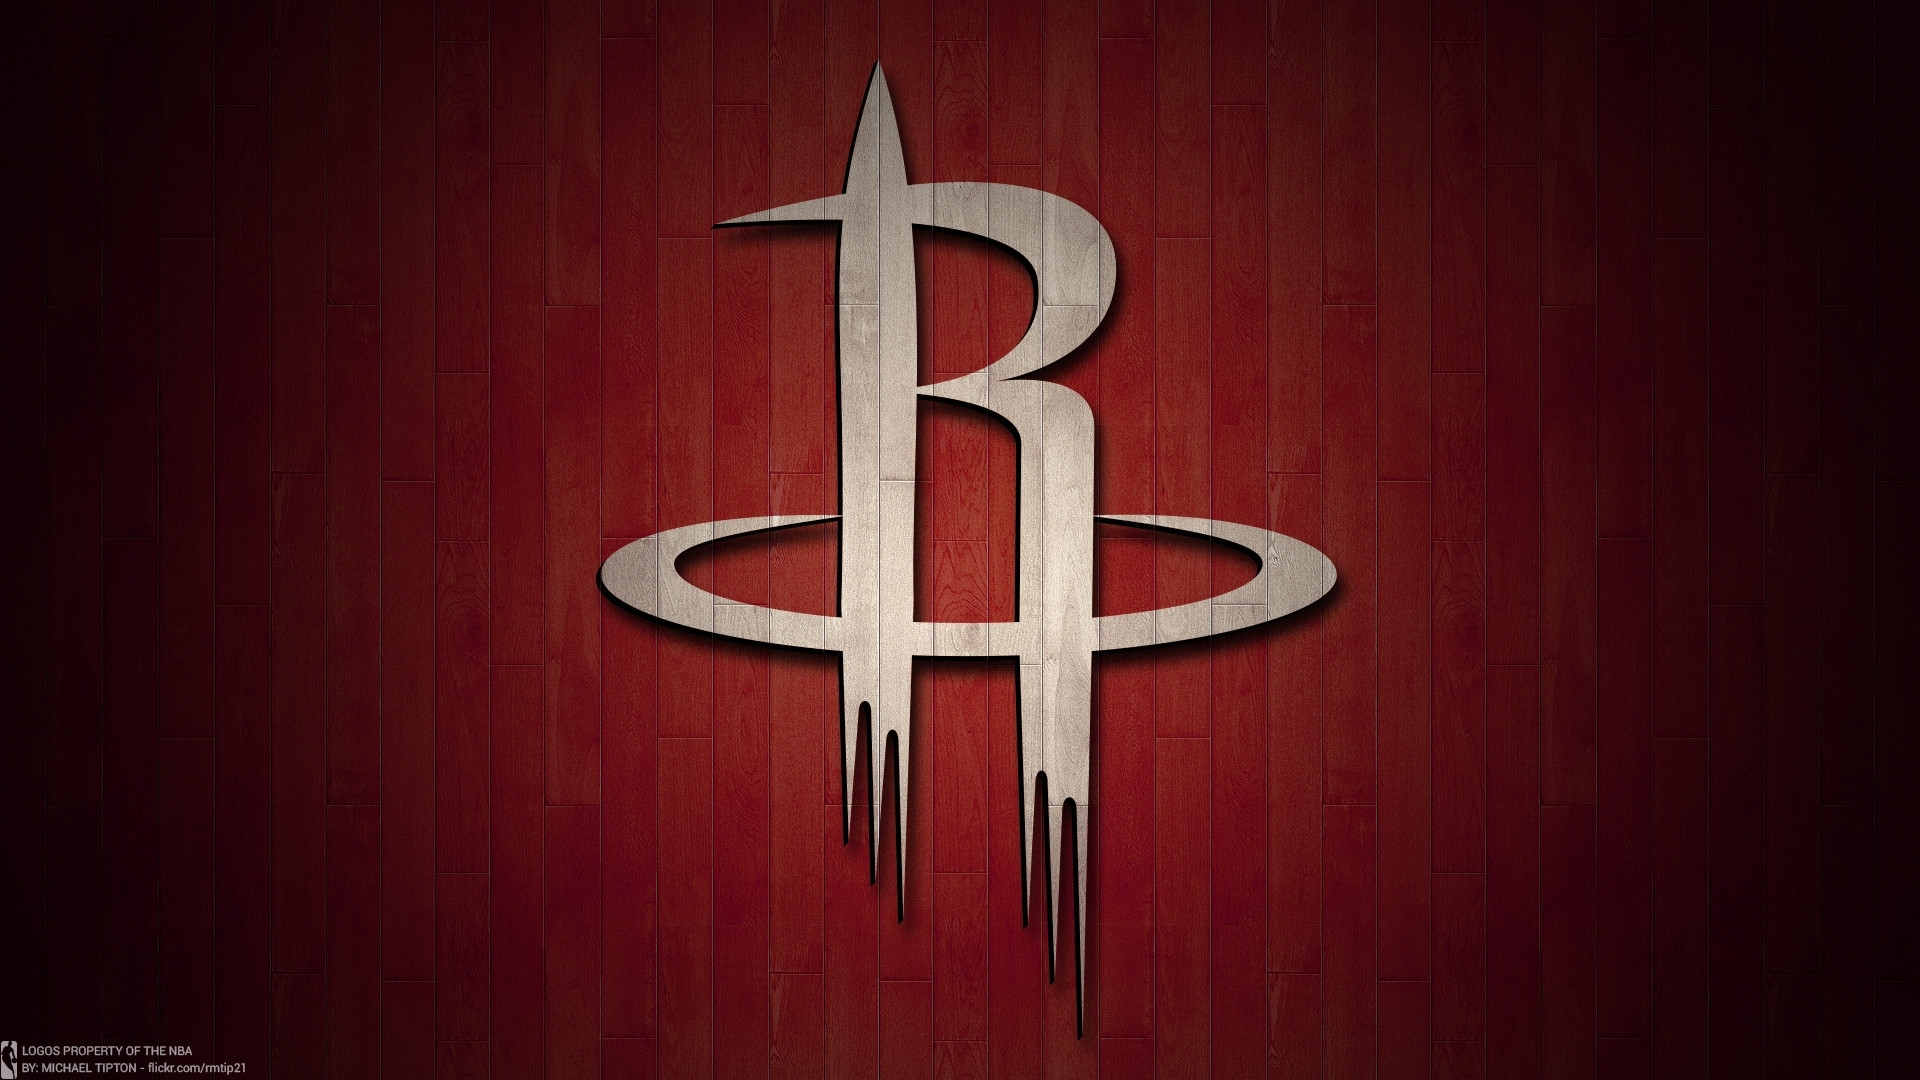 houston rockets wallpapers hd (77+ images)